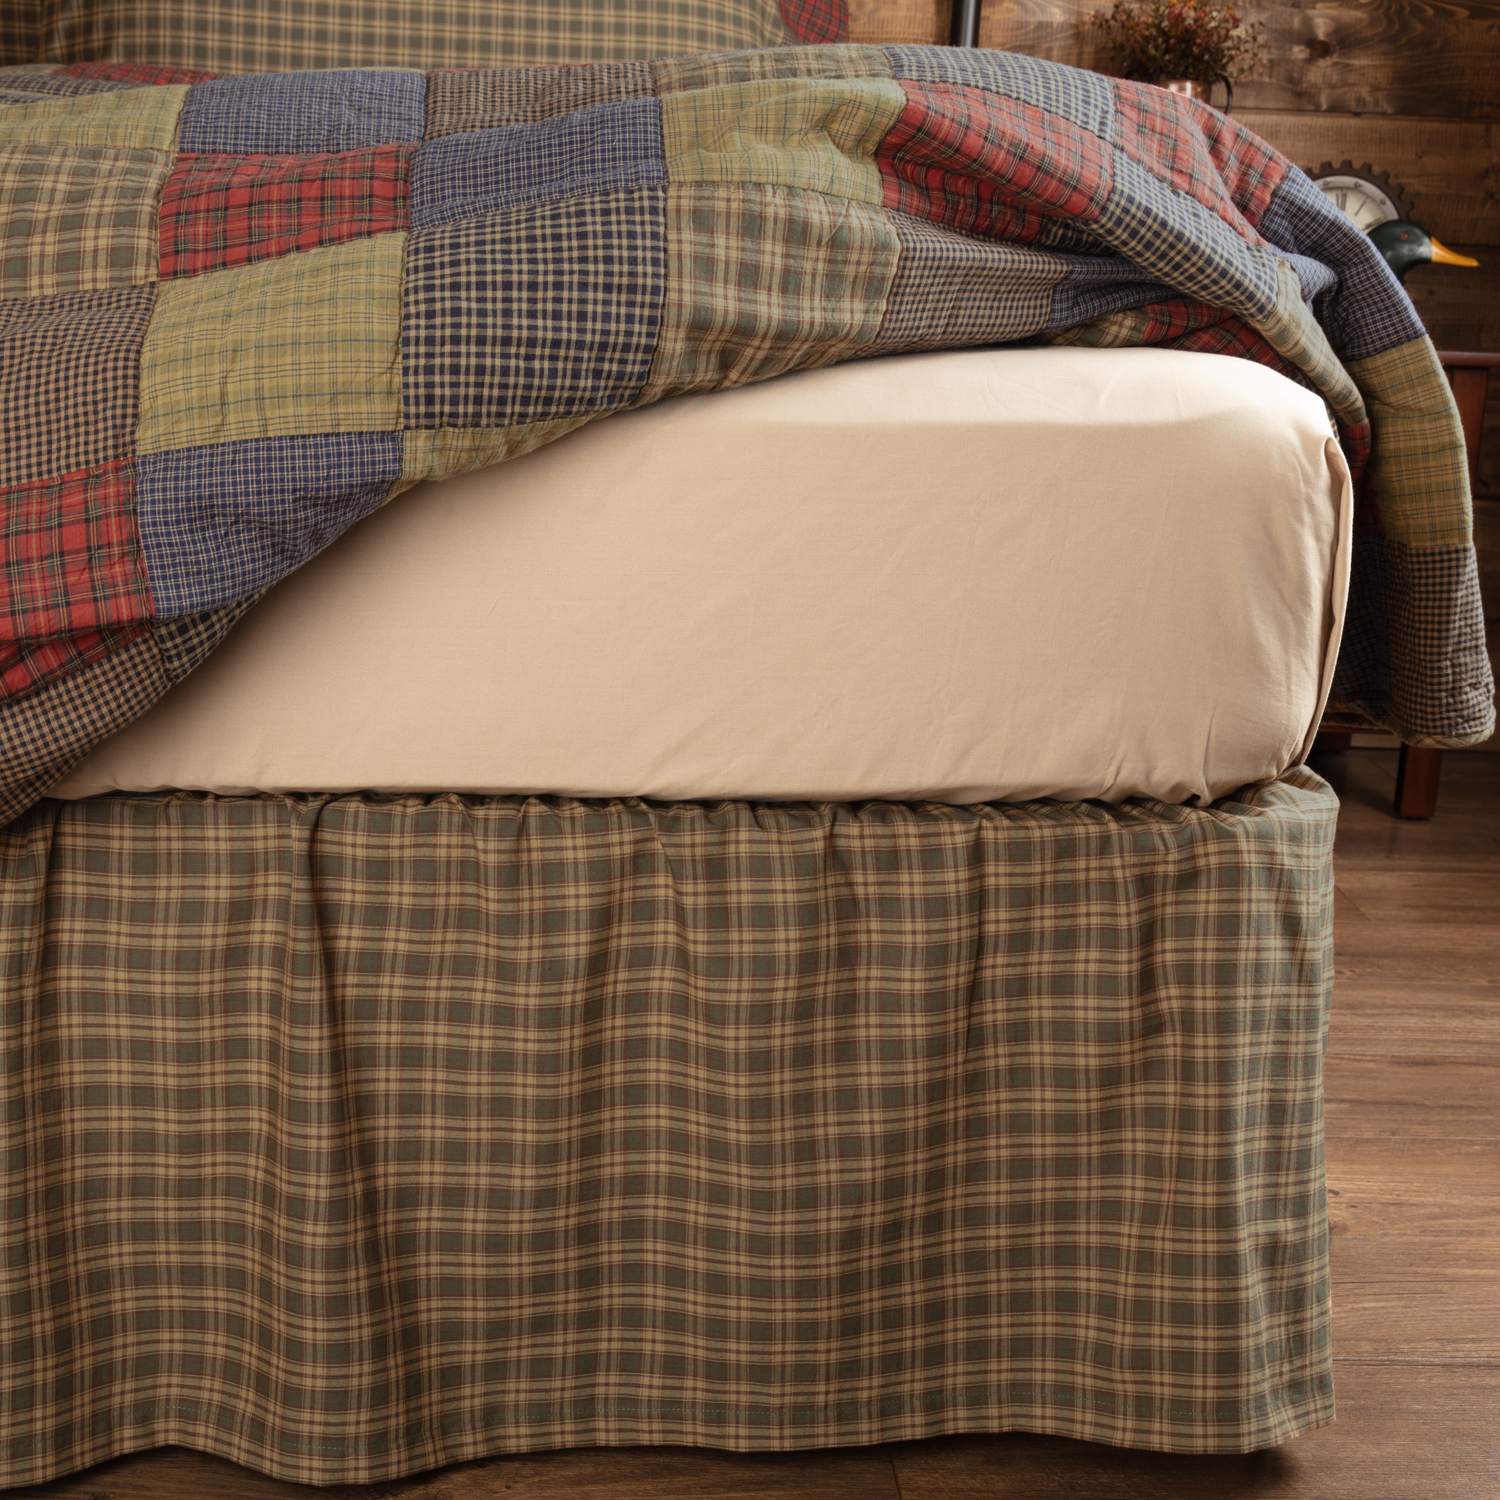 Cedar Ridge Twin Bed Skirt 39x76x16